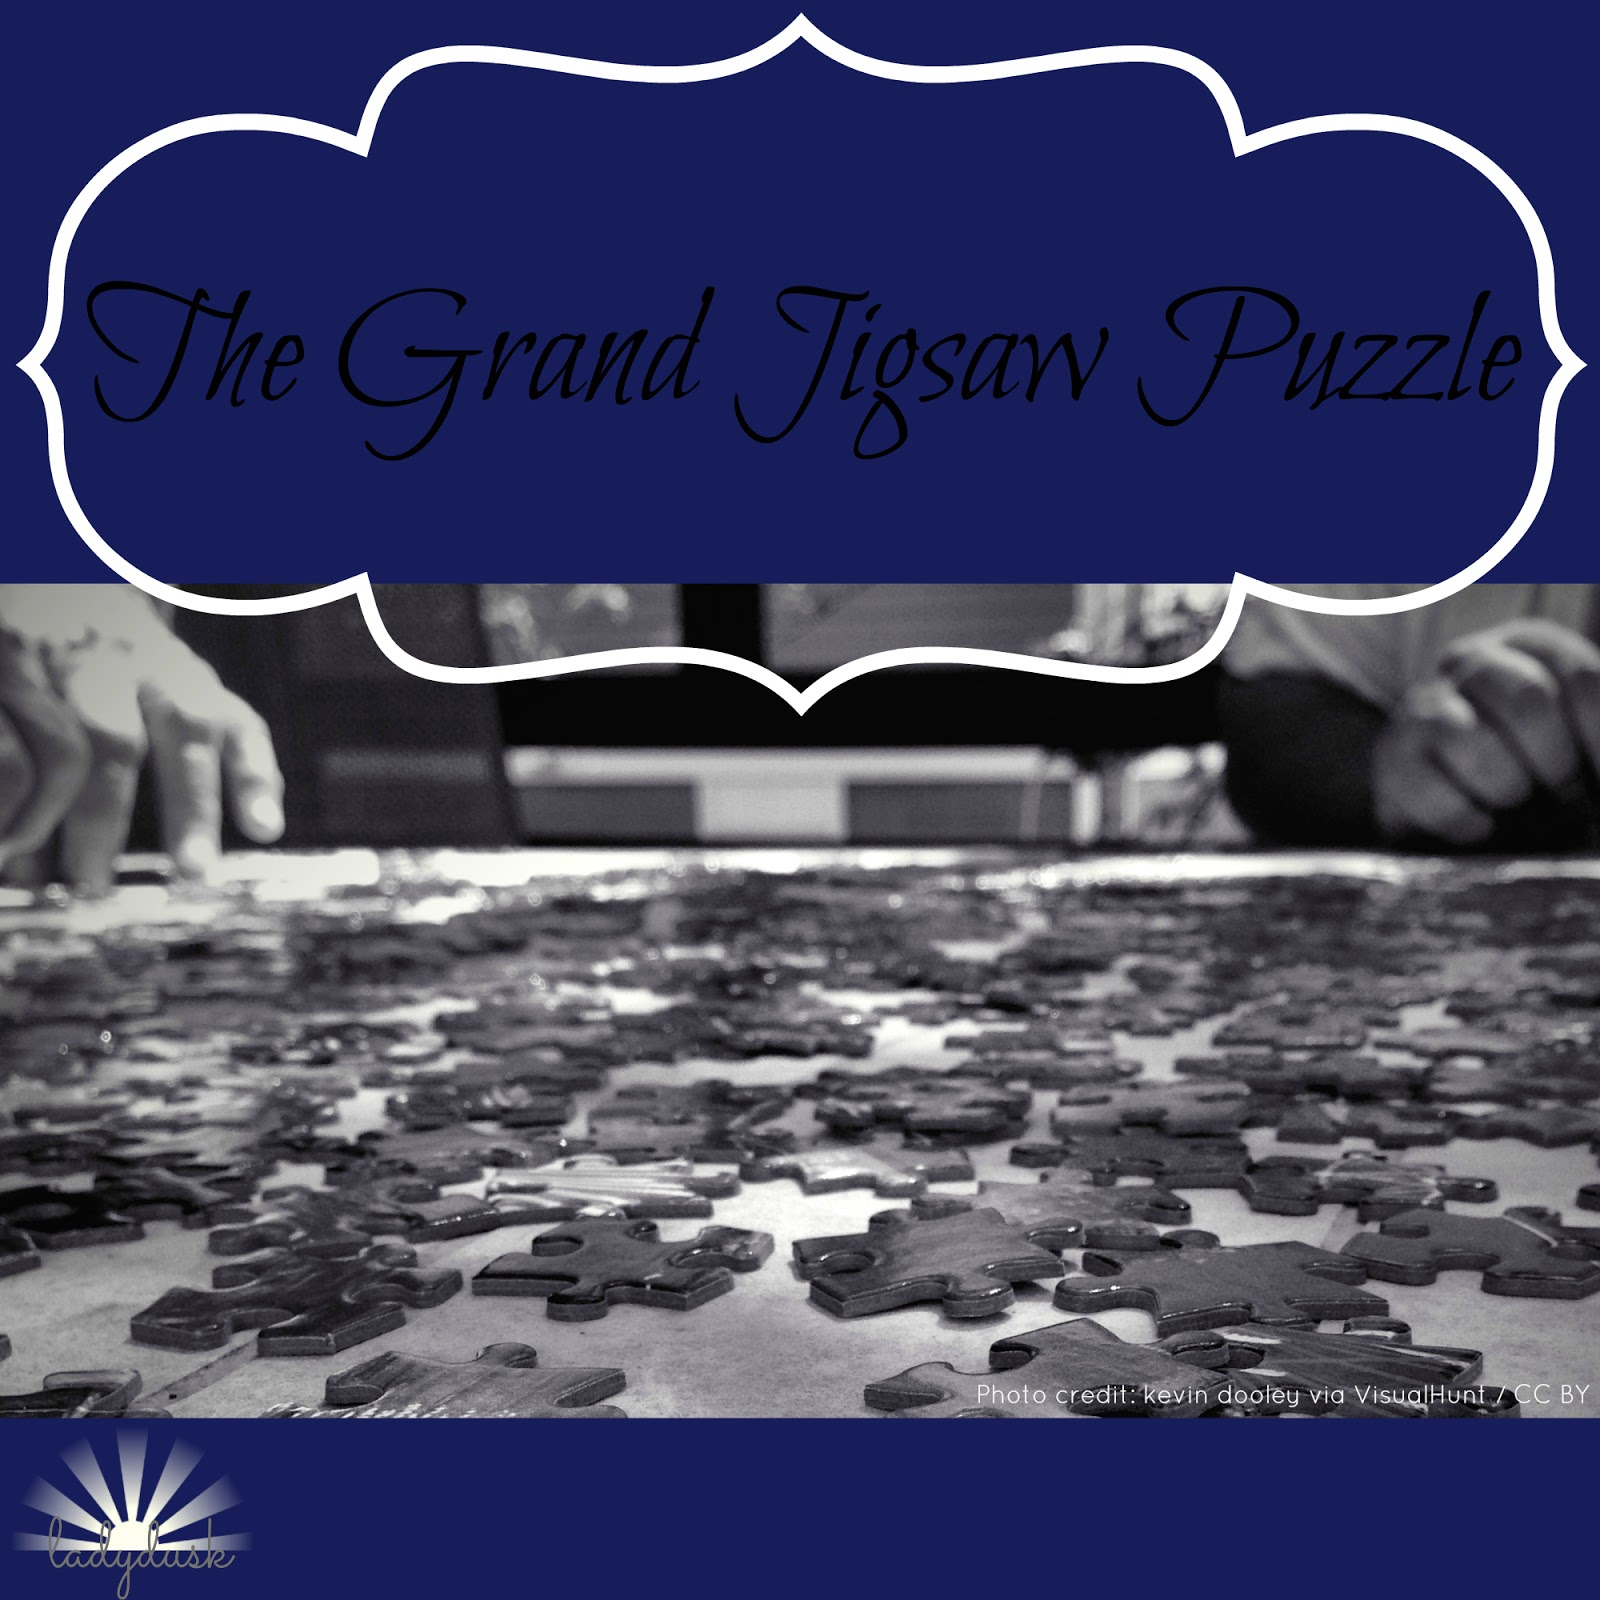 The Grand Jigsaw Puzzle